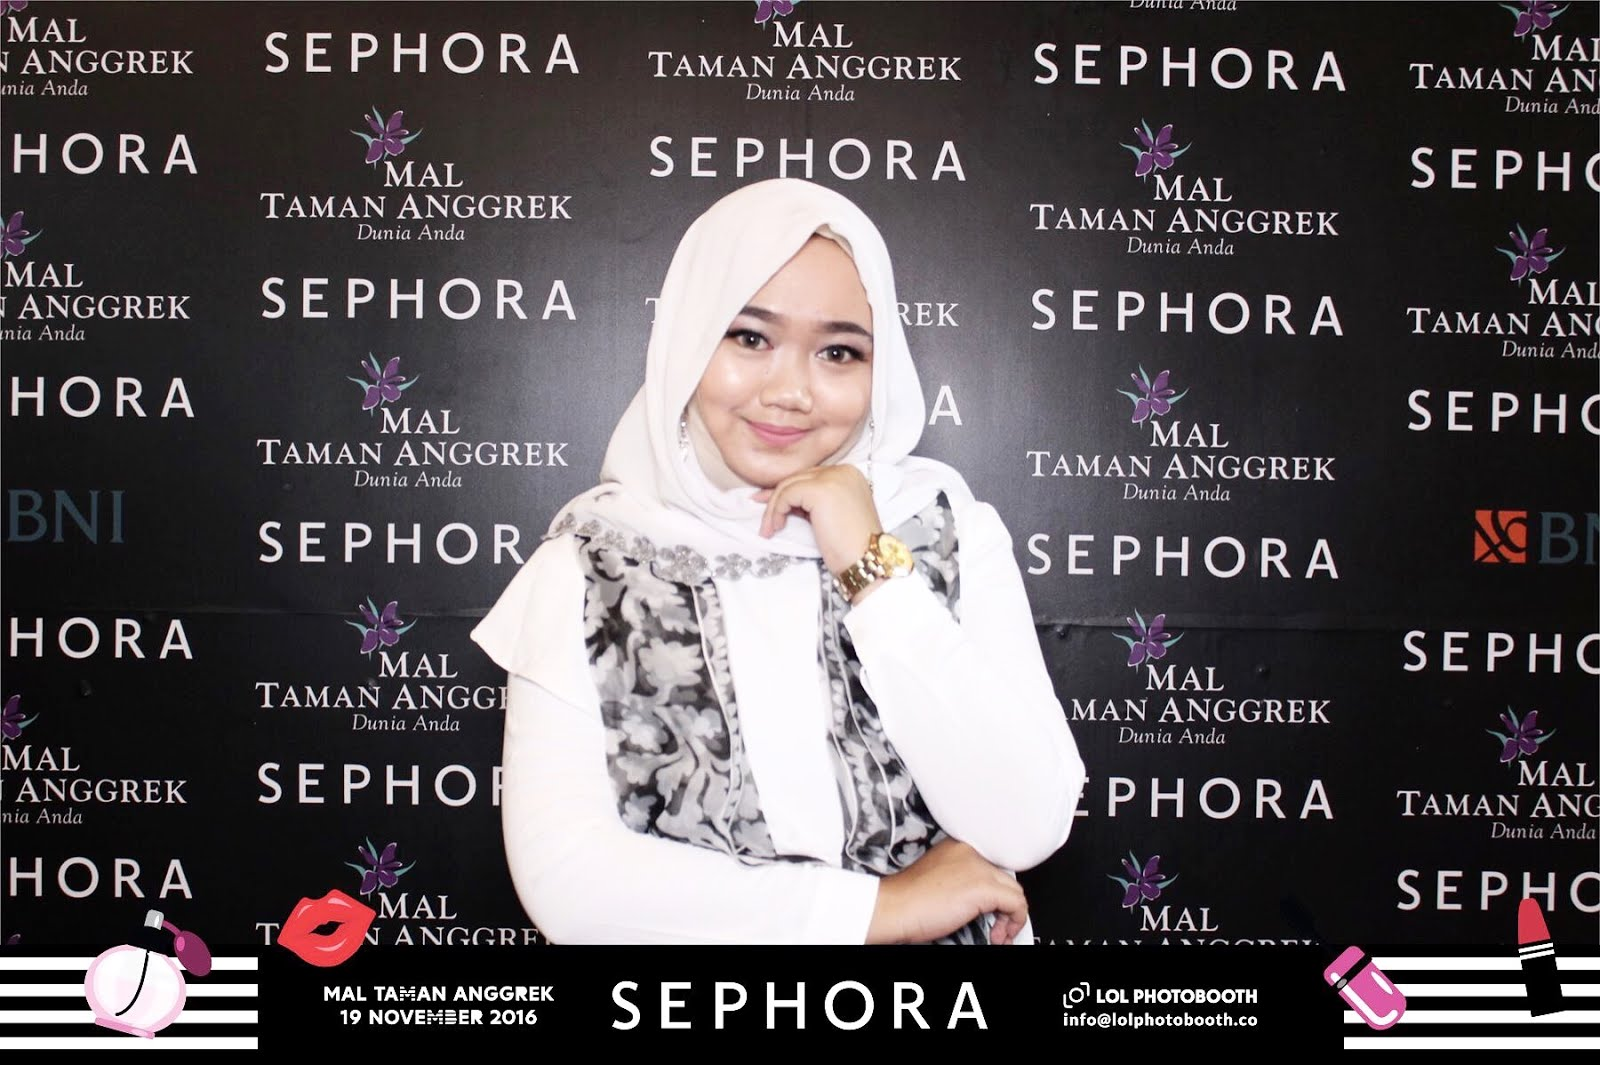 Sephora Indonesia Beauty Influencer